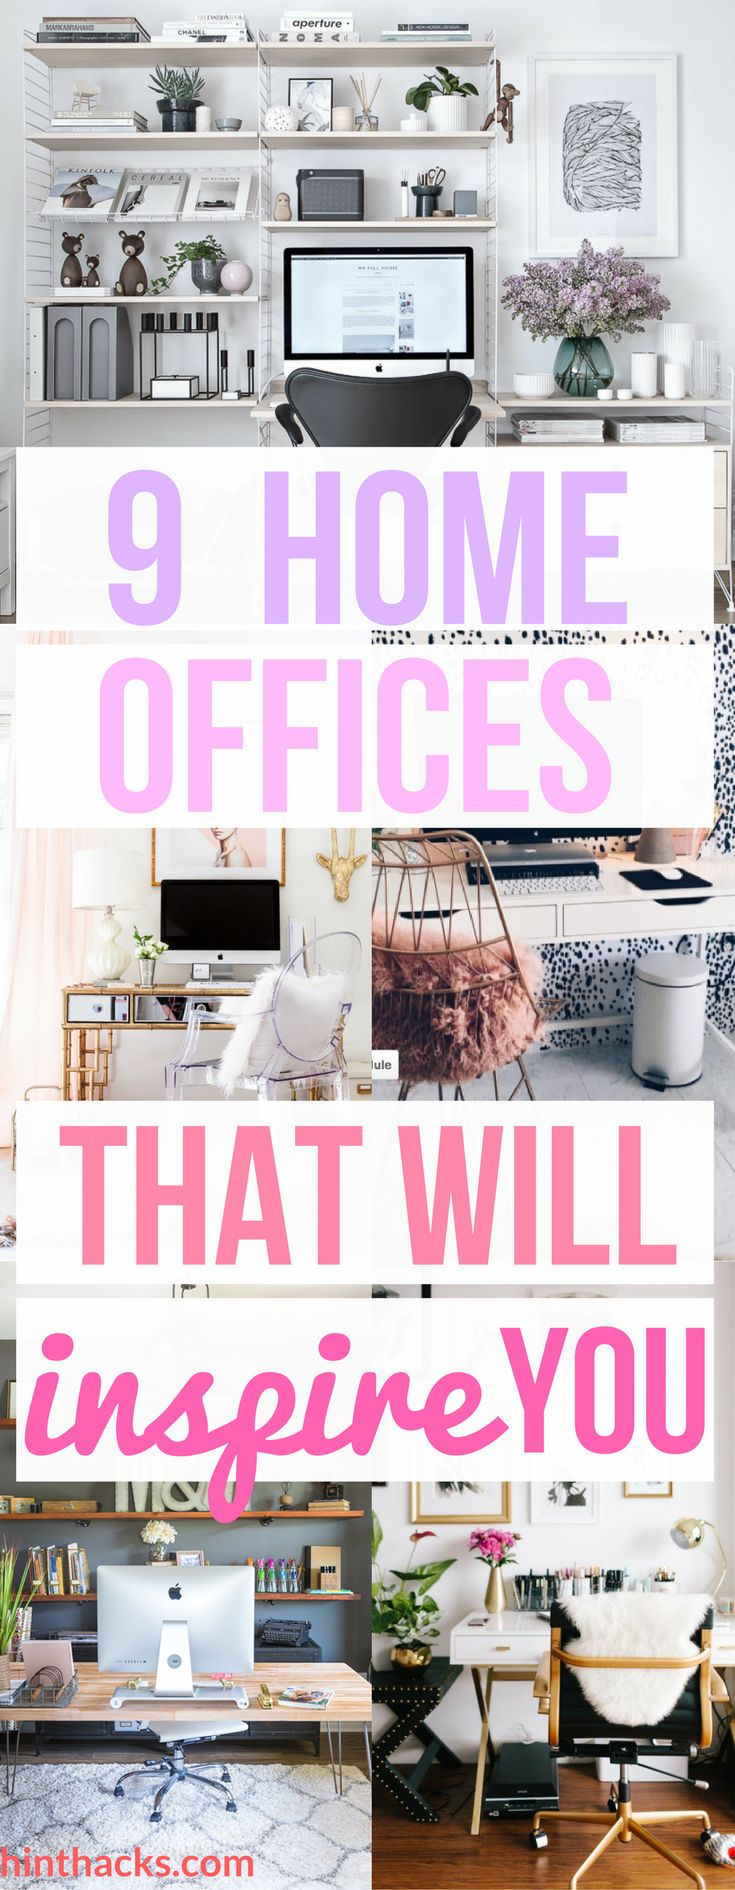 diy office organization 1 diy home office. 9 home offices that will inspire you diy office organization 1